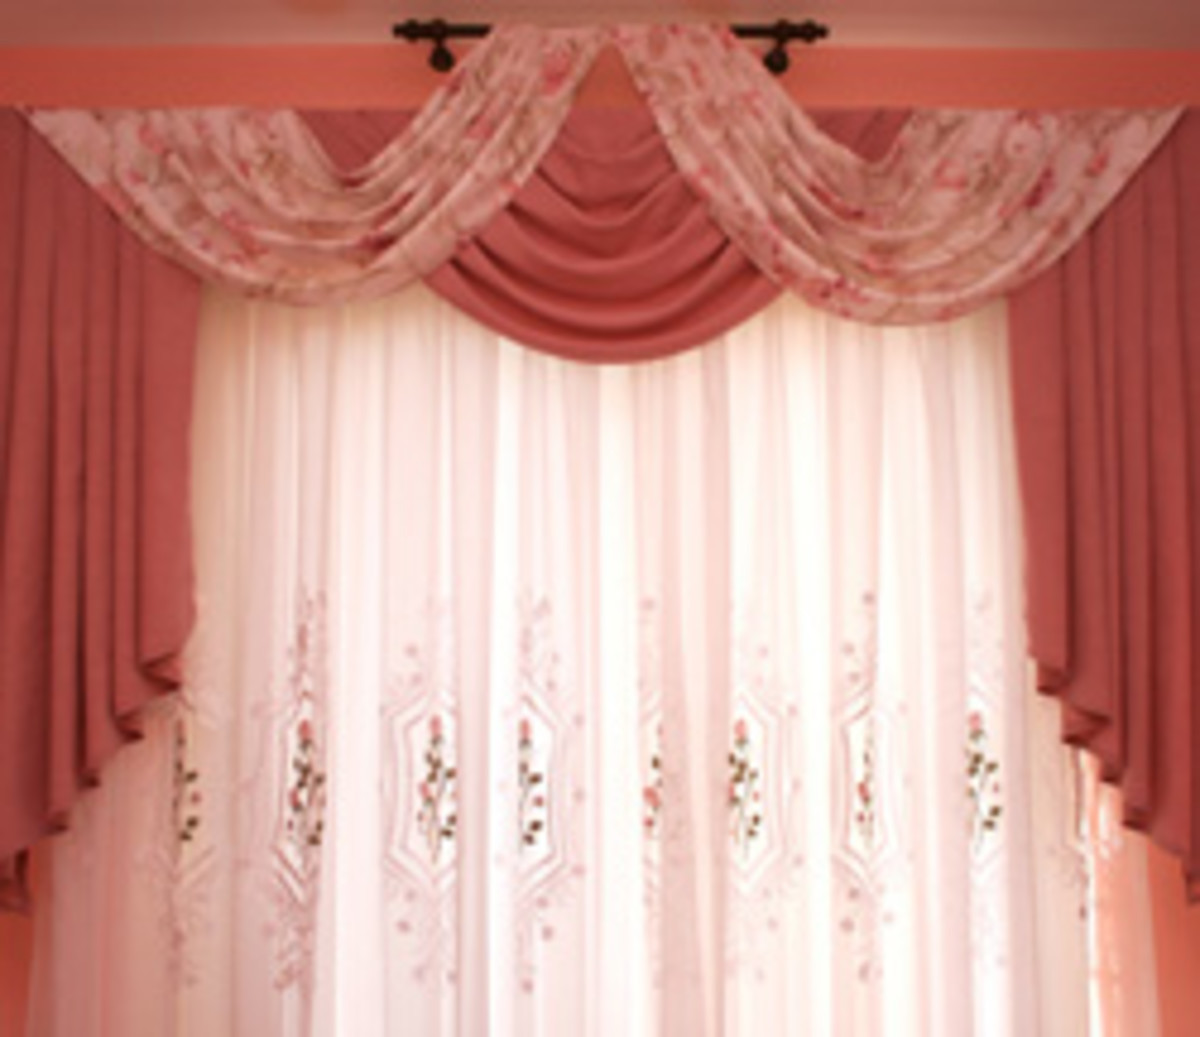 Colorful window scarves are draped over this sheer to create a stunning effect.